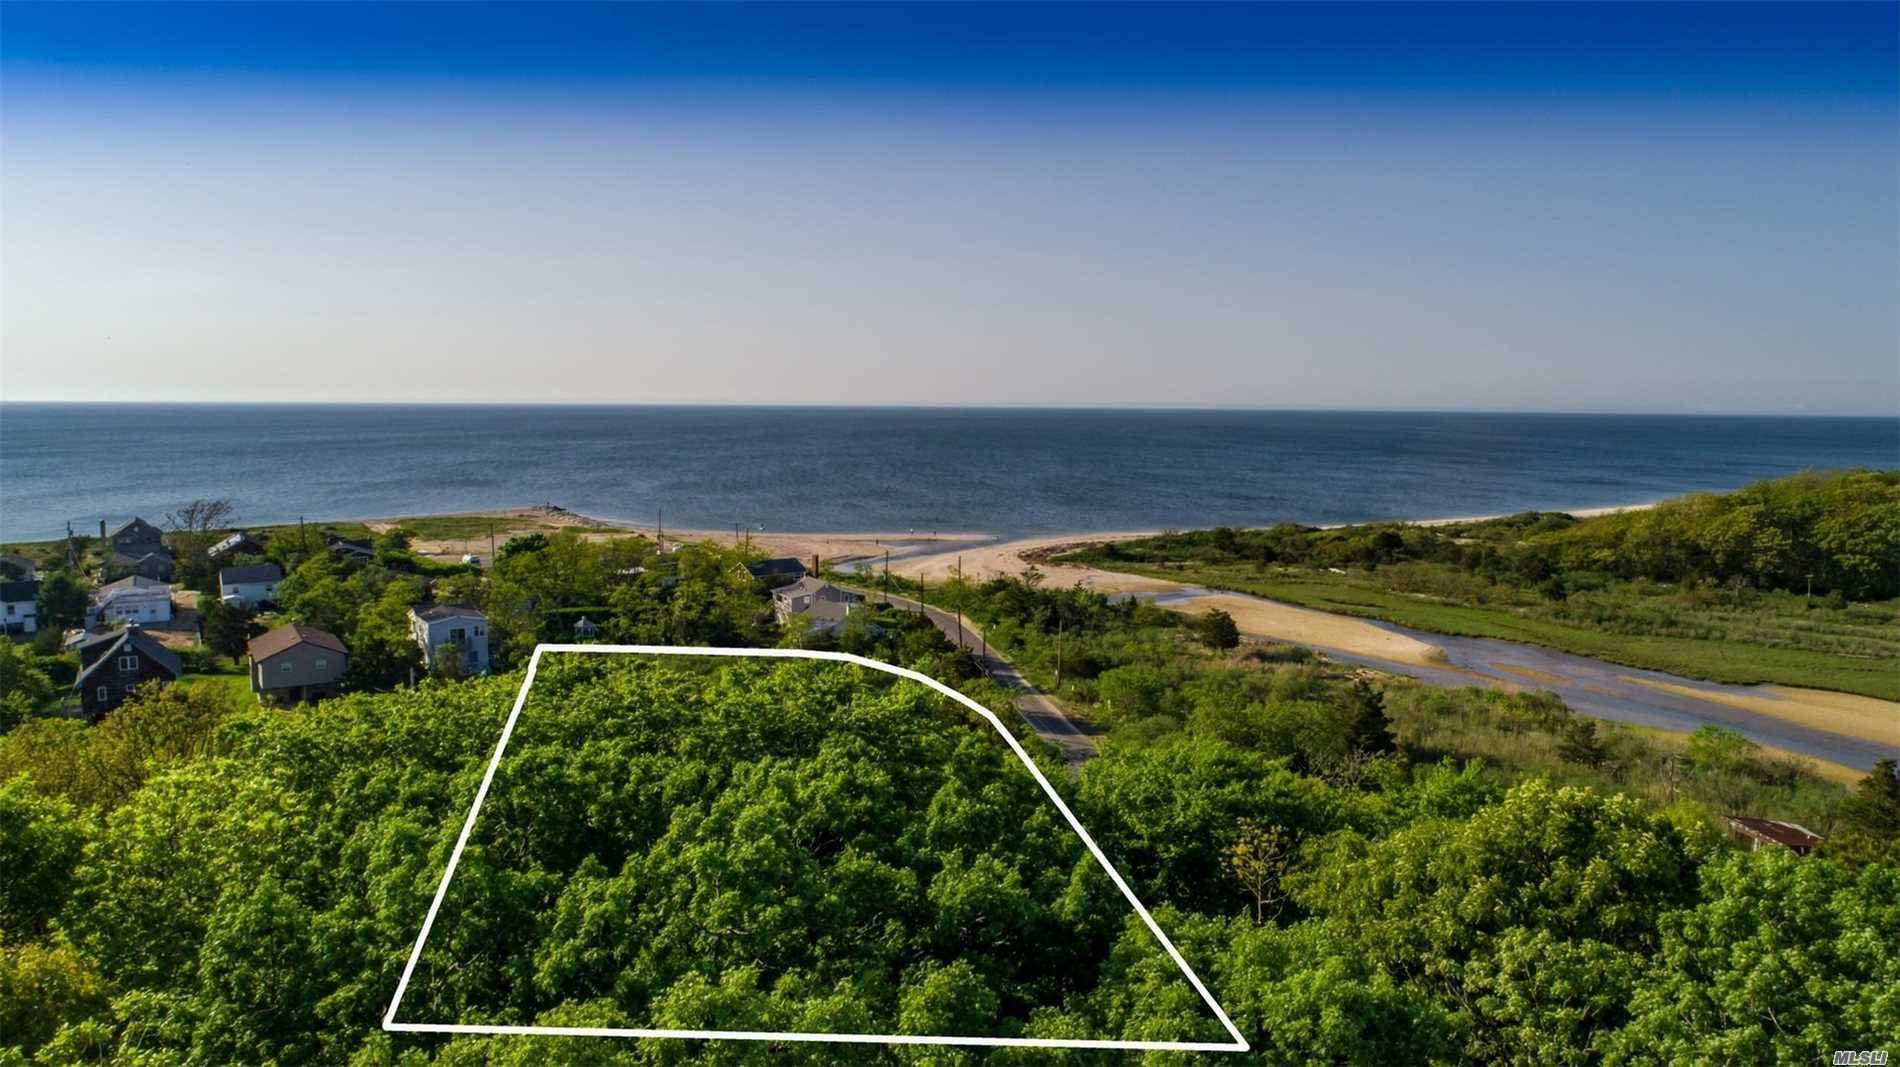 If You Are Dreaming About Building A New Home Near The Water - This Is It! 1.2 Acres, Elevated Lot, With Partial Views Of The Long Island Sound And Goldsmith's Inlet. Best Of All, It's Steps To The Beach And On A Very Private Road. Owner Working On New Survey With Building Envelope. Not Many Pieces Of Land Like This Available Any More. Hurry!